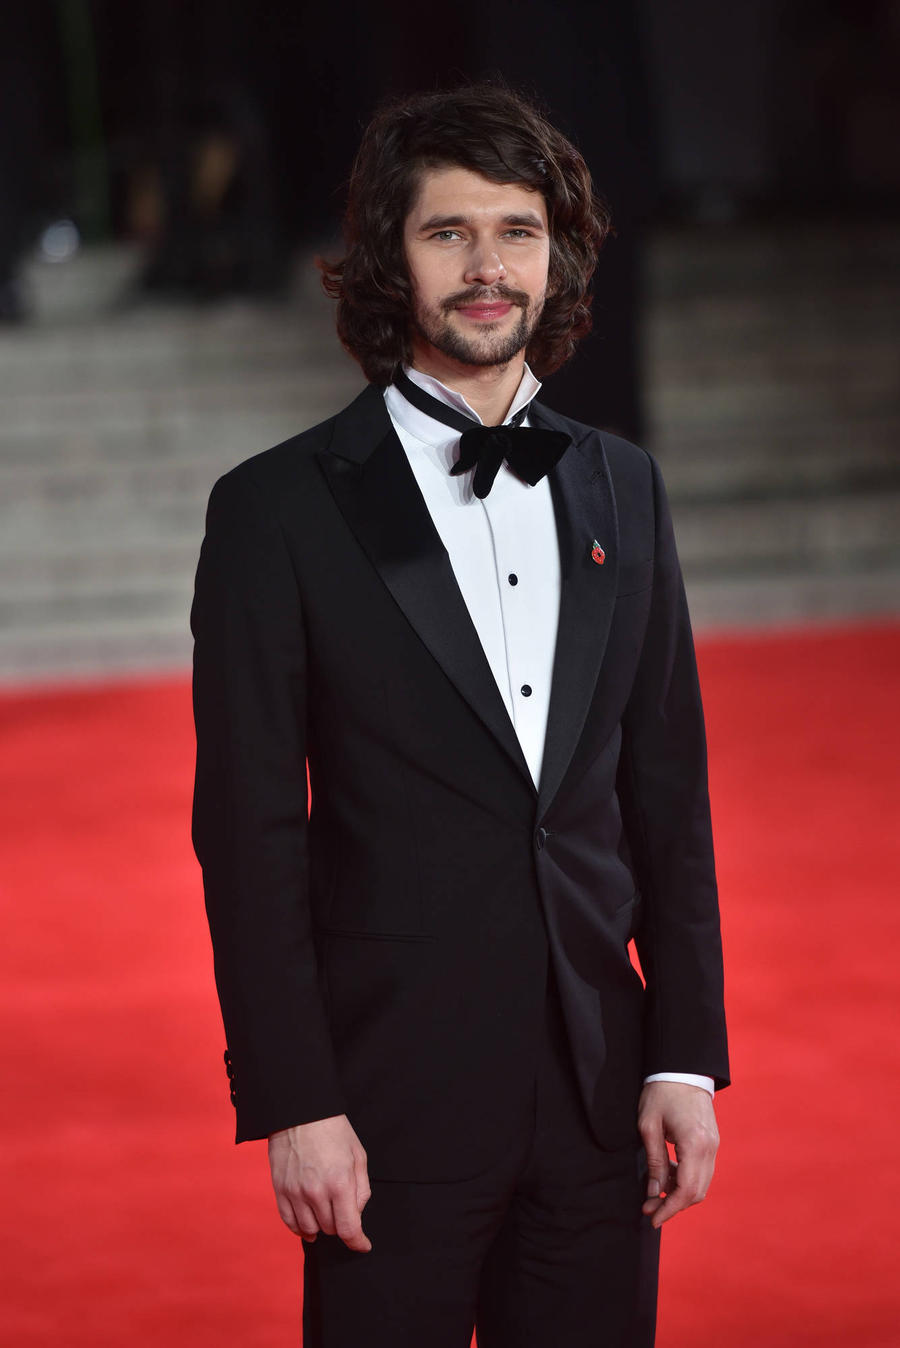 Ben Whishaw: 'Sometimes I Think About Quitting It All!'